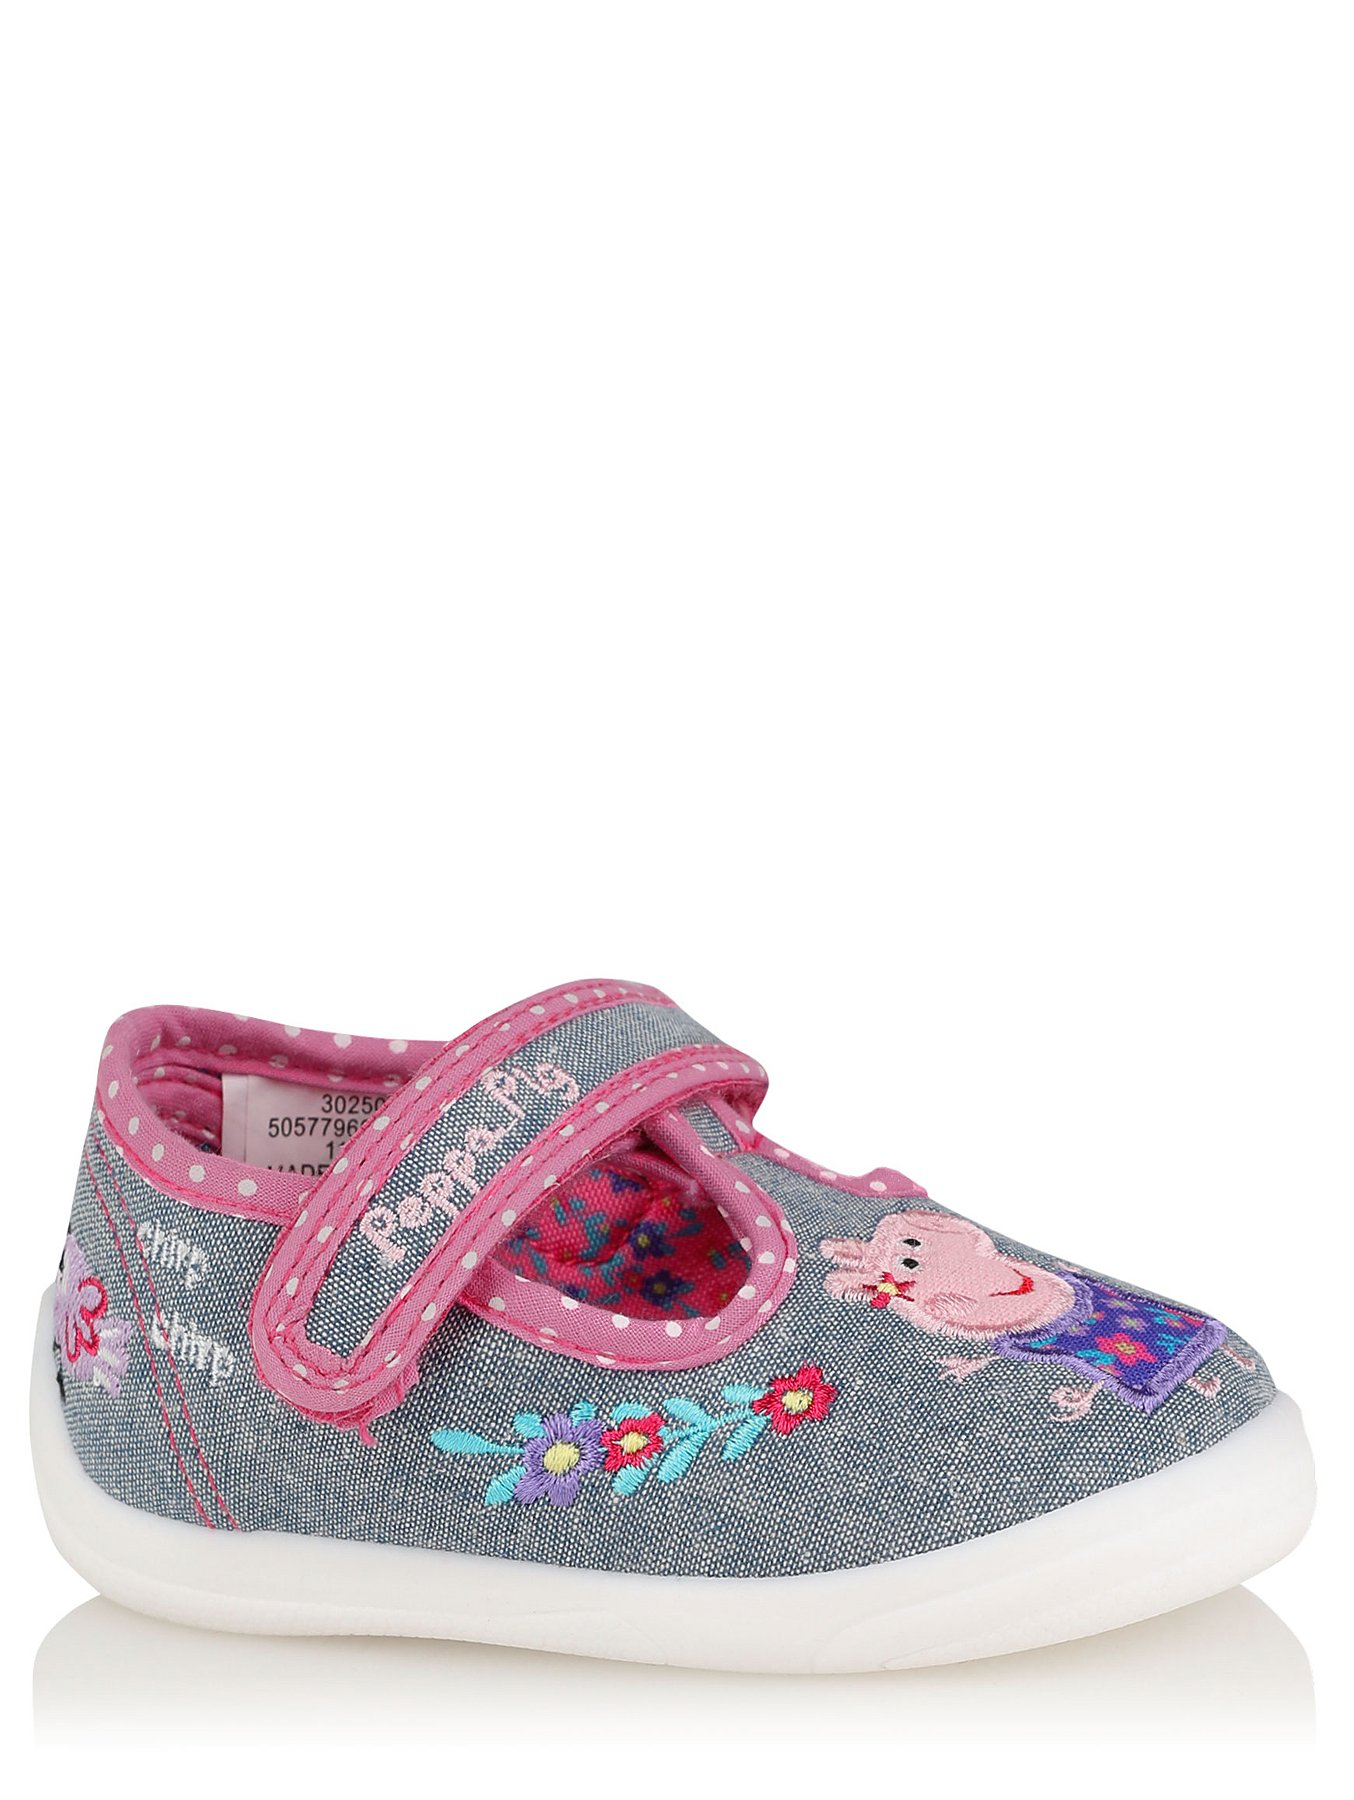 f13fb21c0 First Walkers Peppa Pig Shoes. Reset